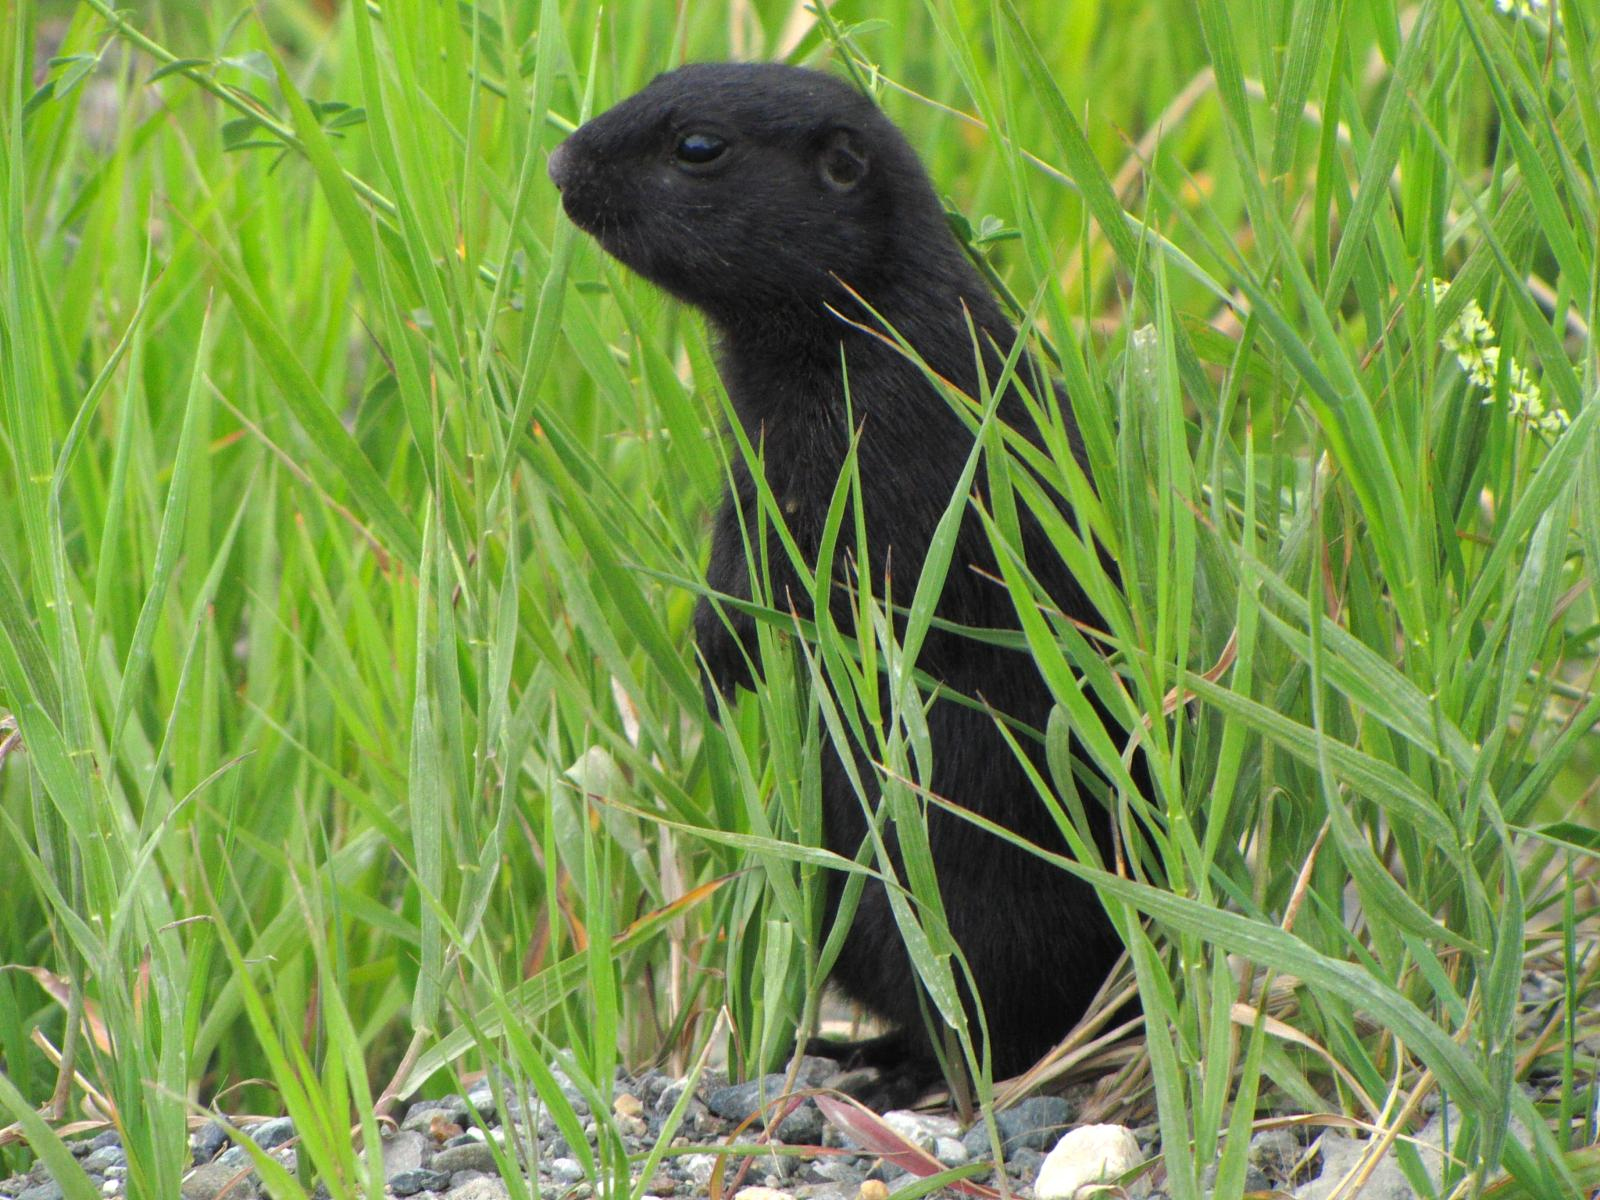 Black Arctic Ground Squirrel.